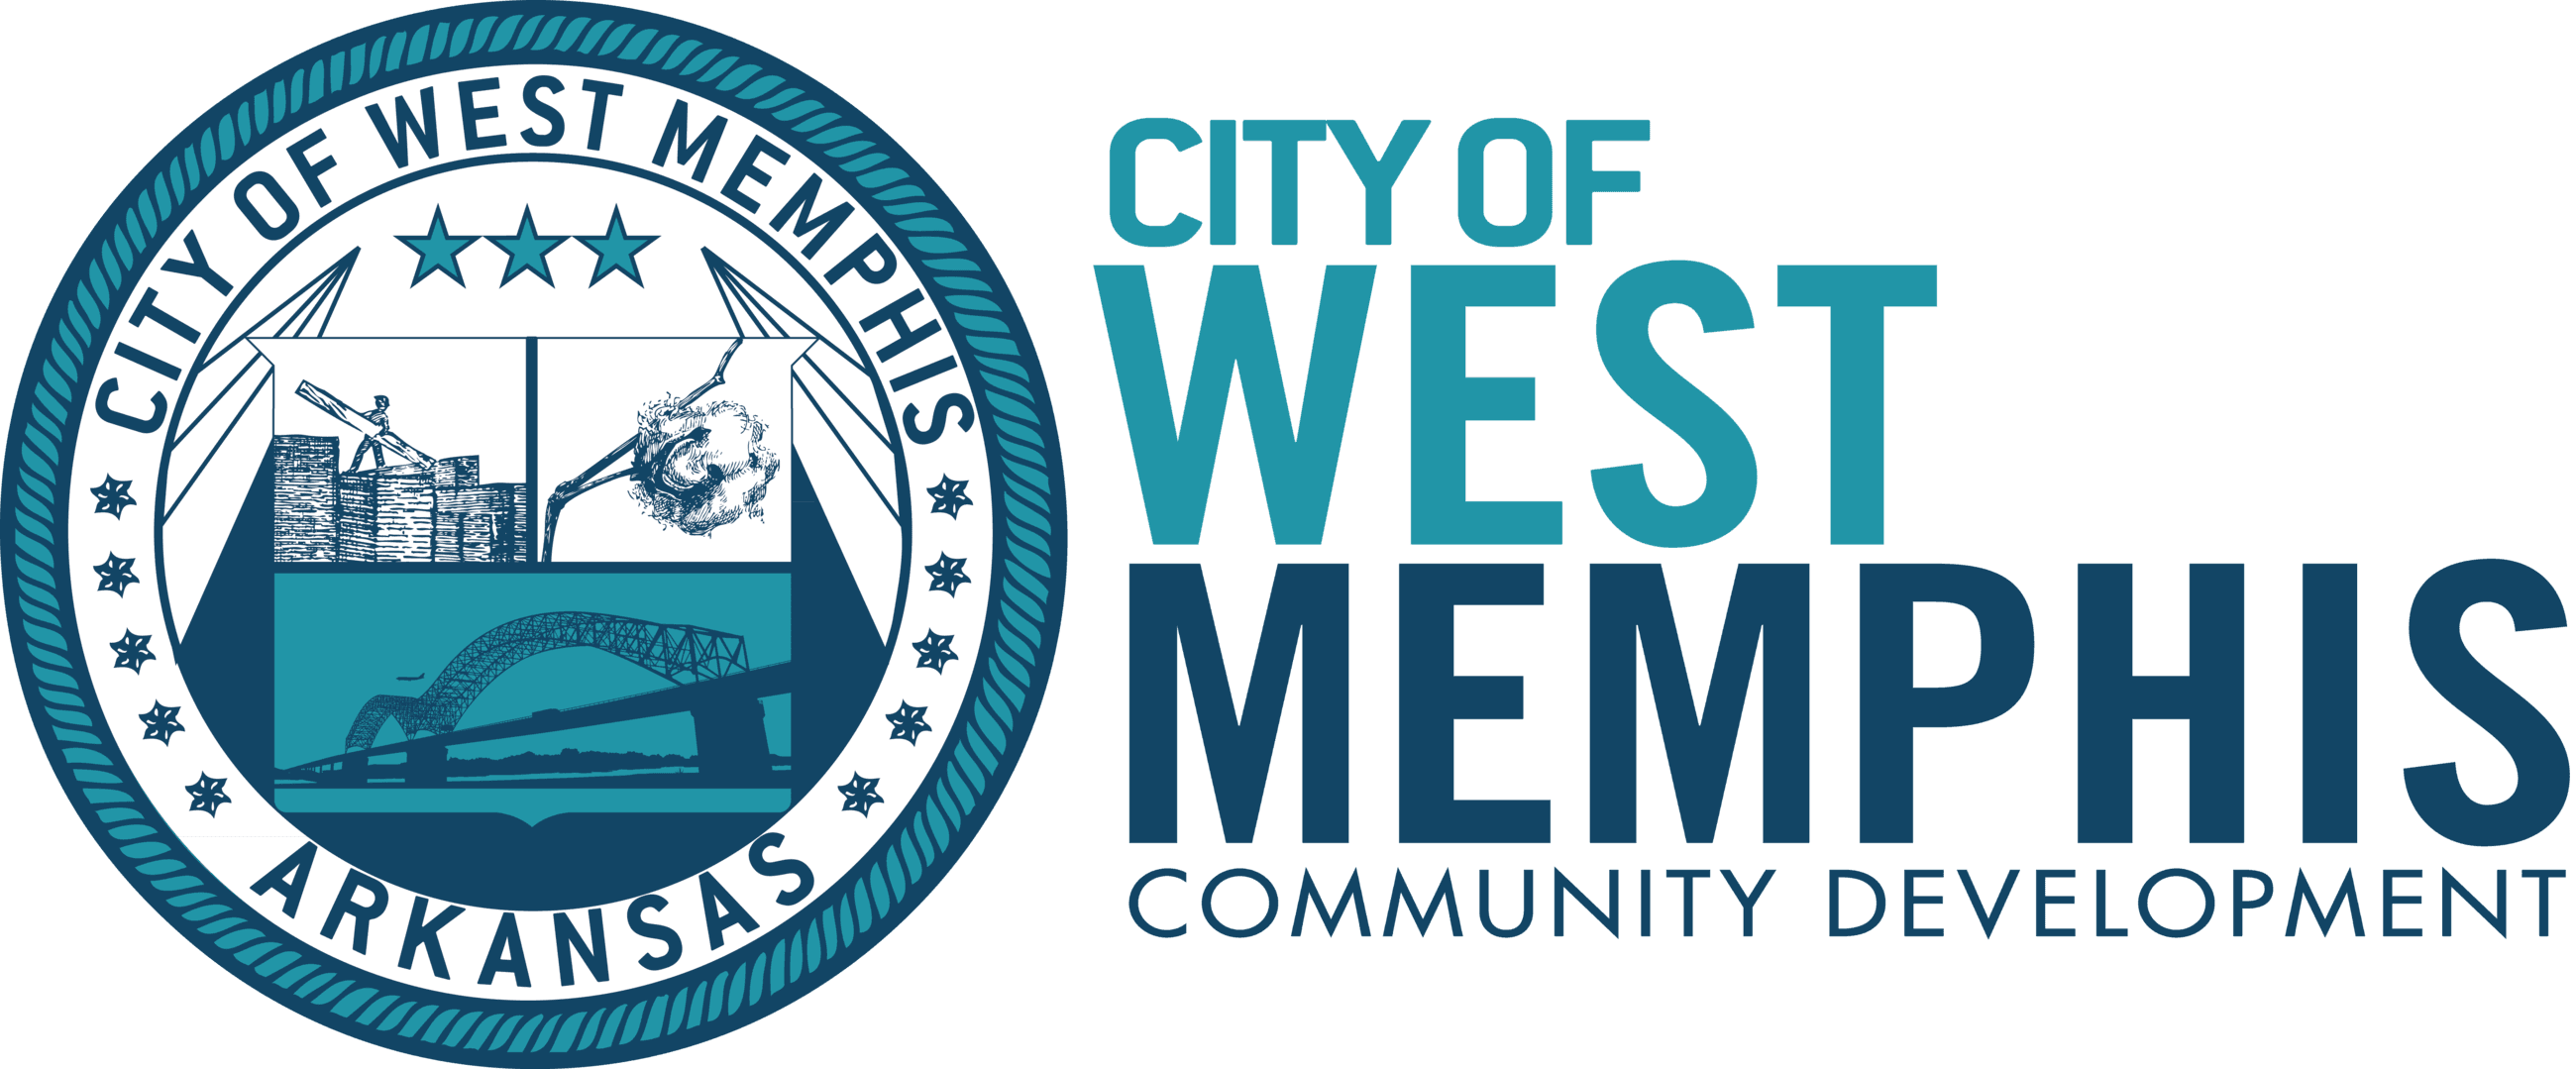 West Memphis COMMUNITY and Development logo